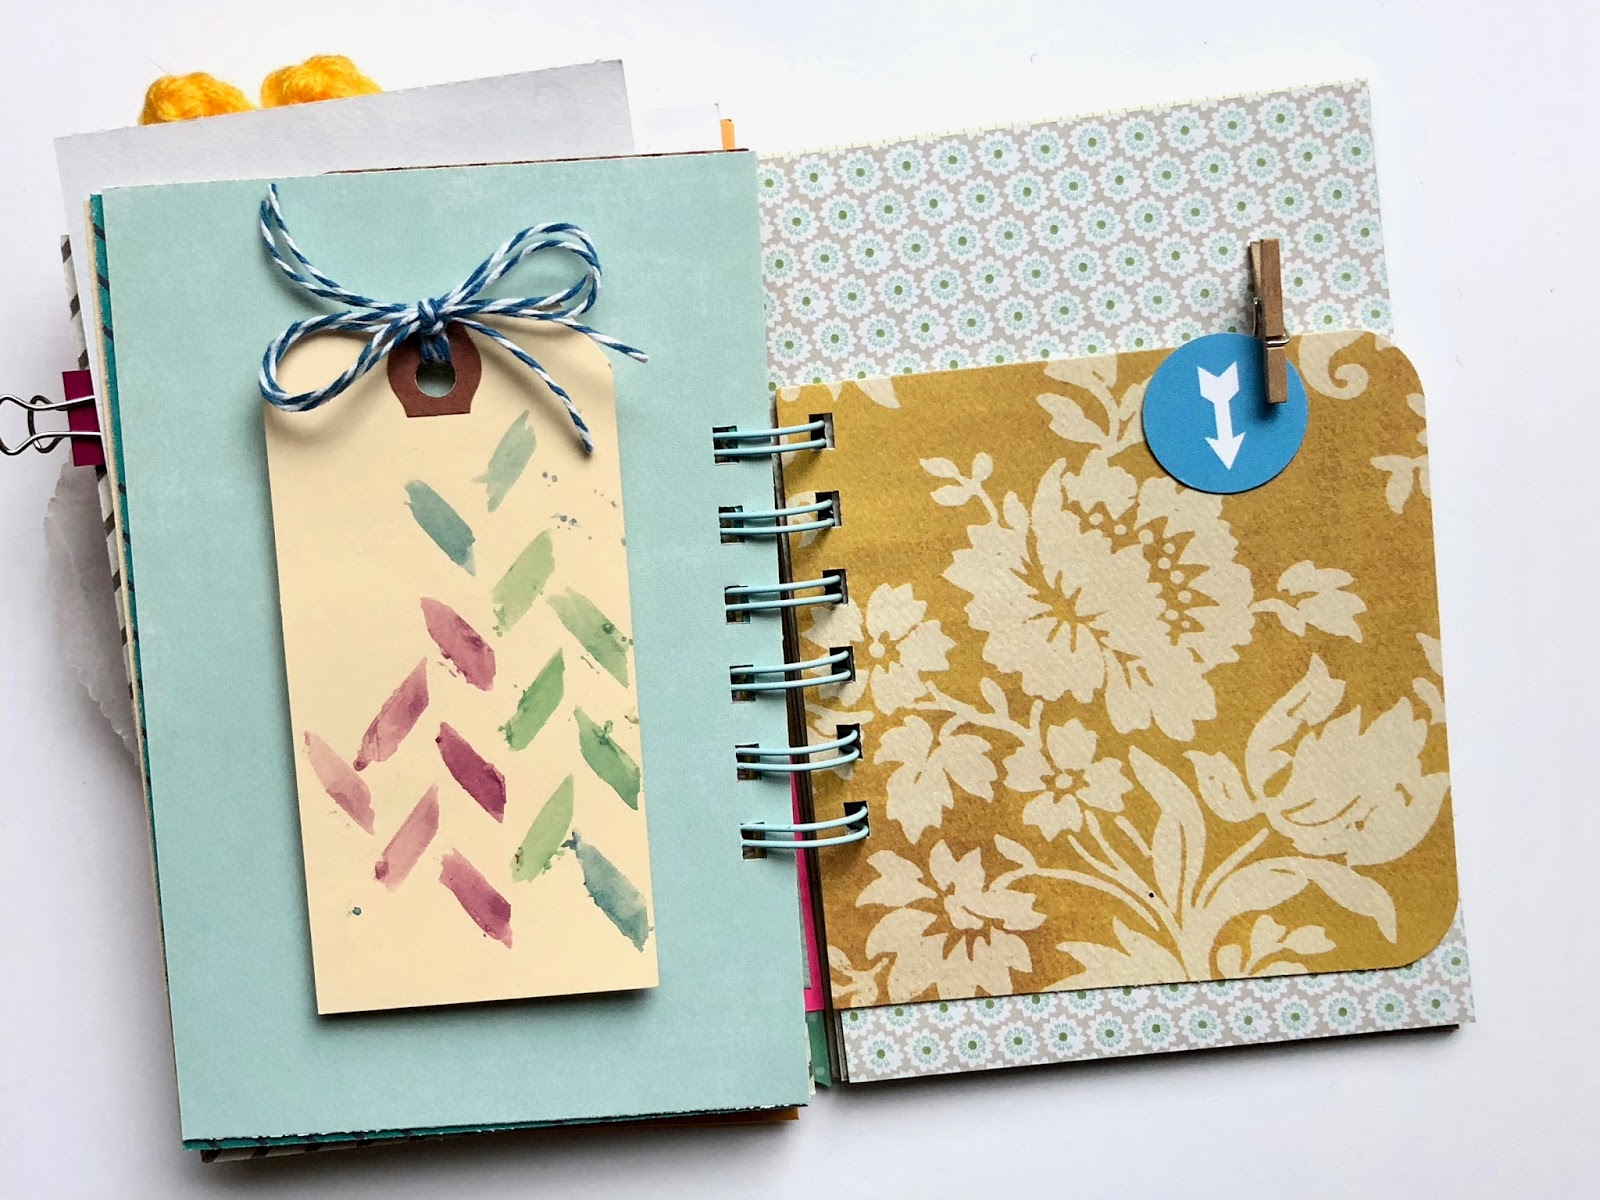 #30lists #smashbook #mini album #mini book #scrapbooking #30 Days of Lists #journal